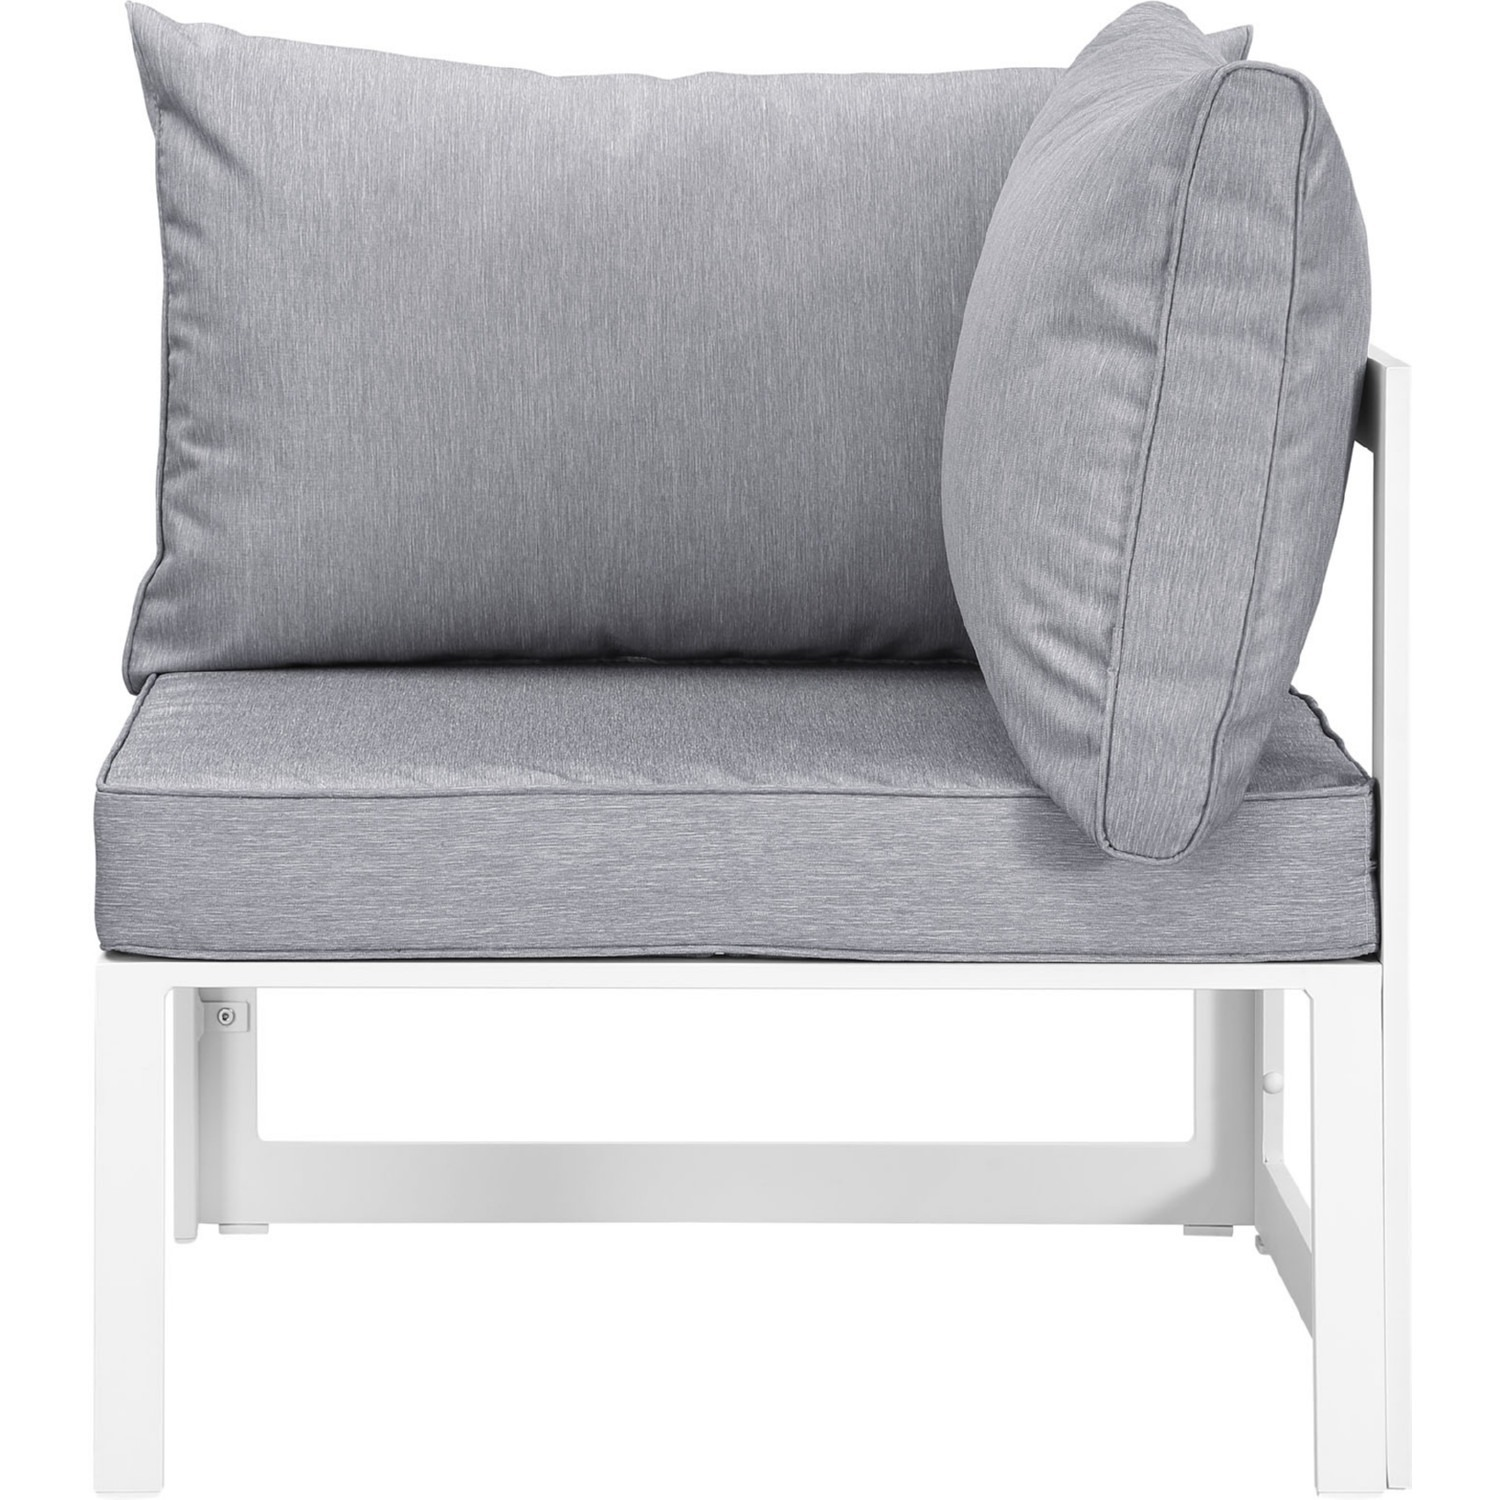 5-Piece Outdoor Sectional In Gray & White Finish - image-4